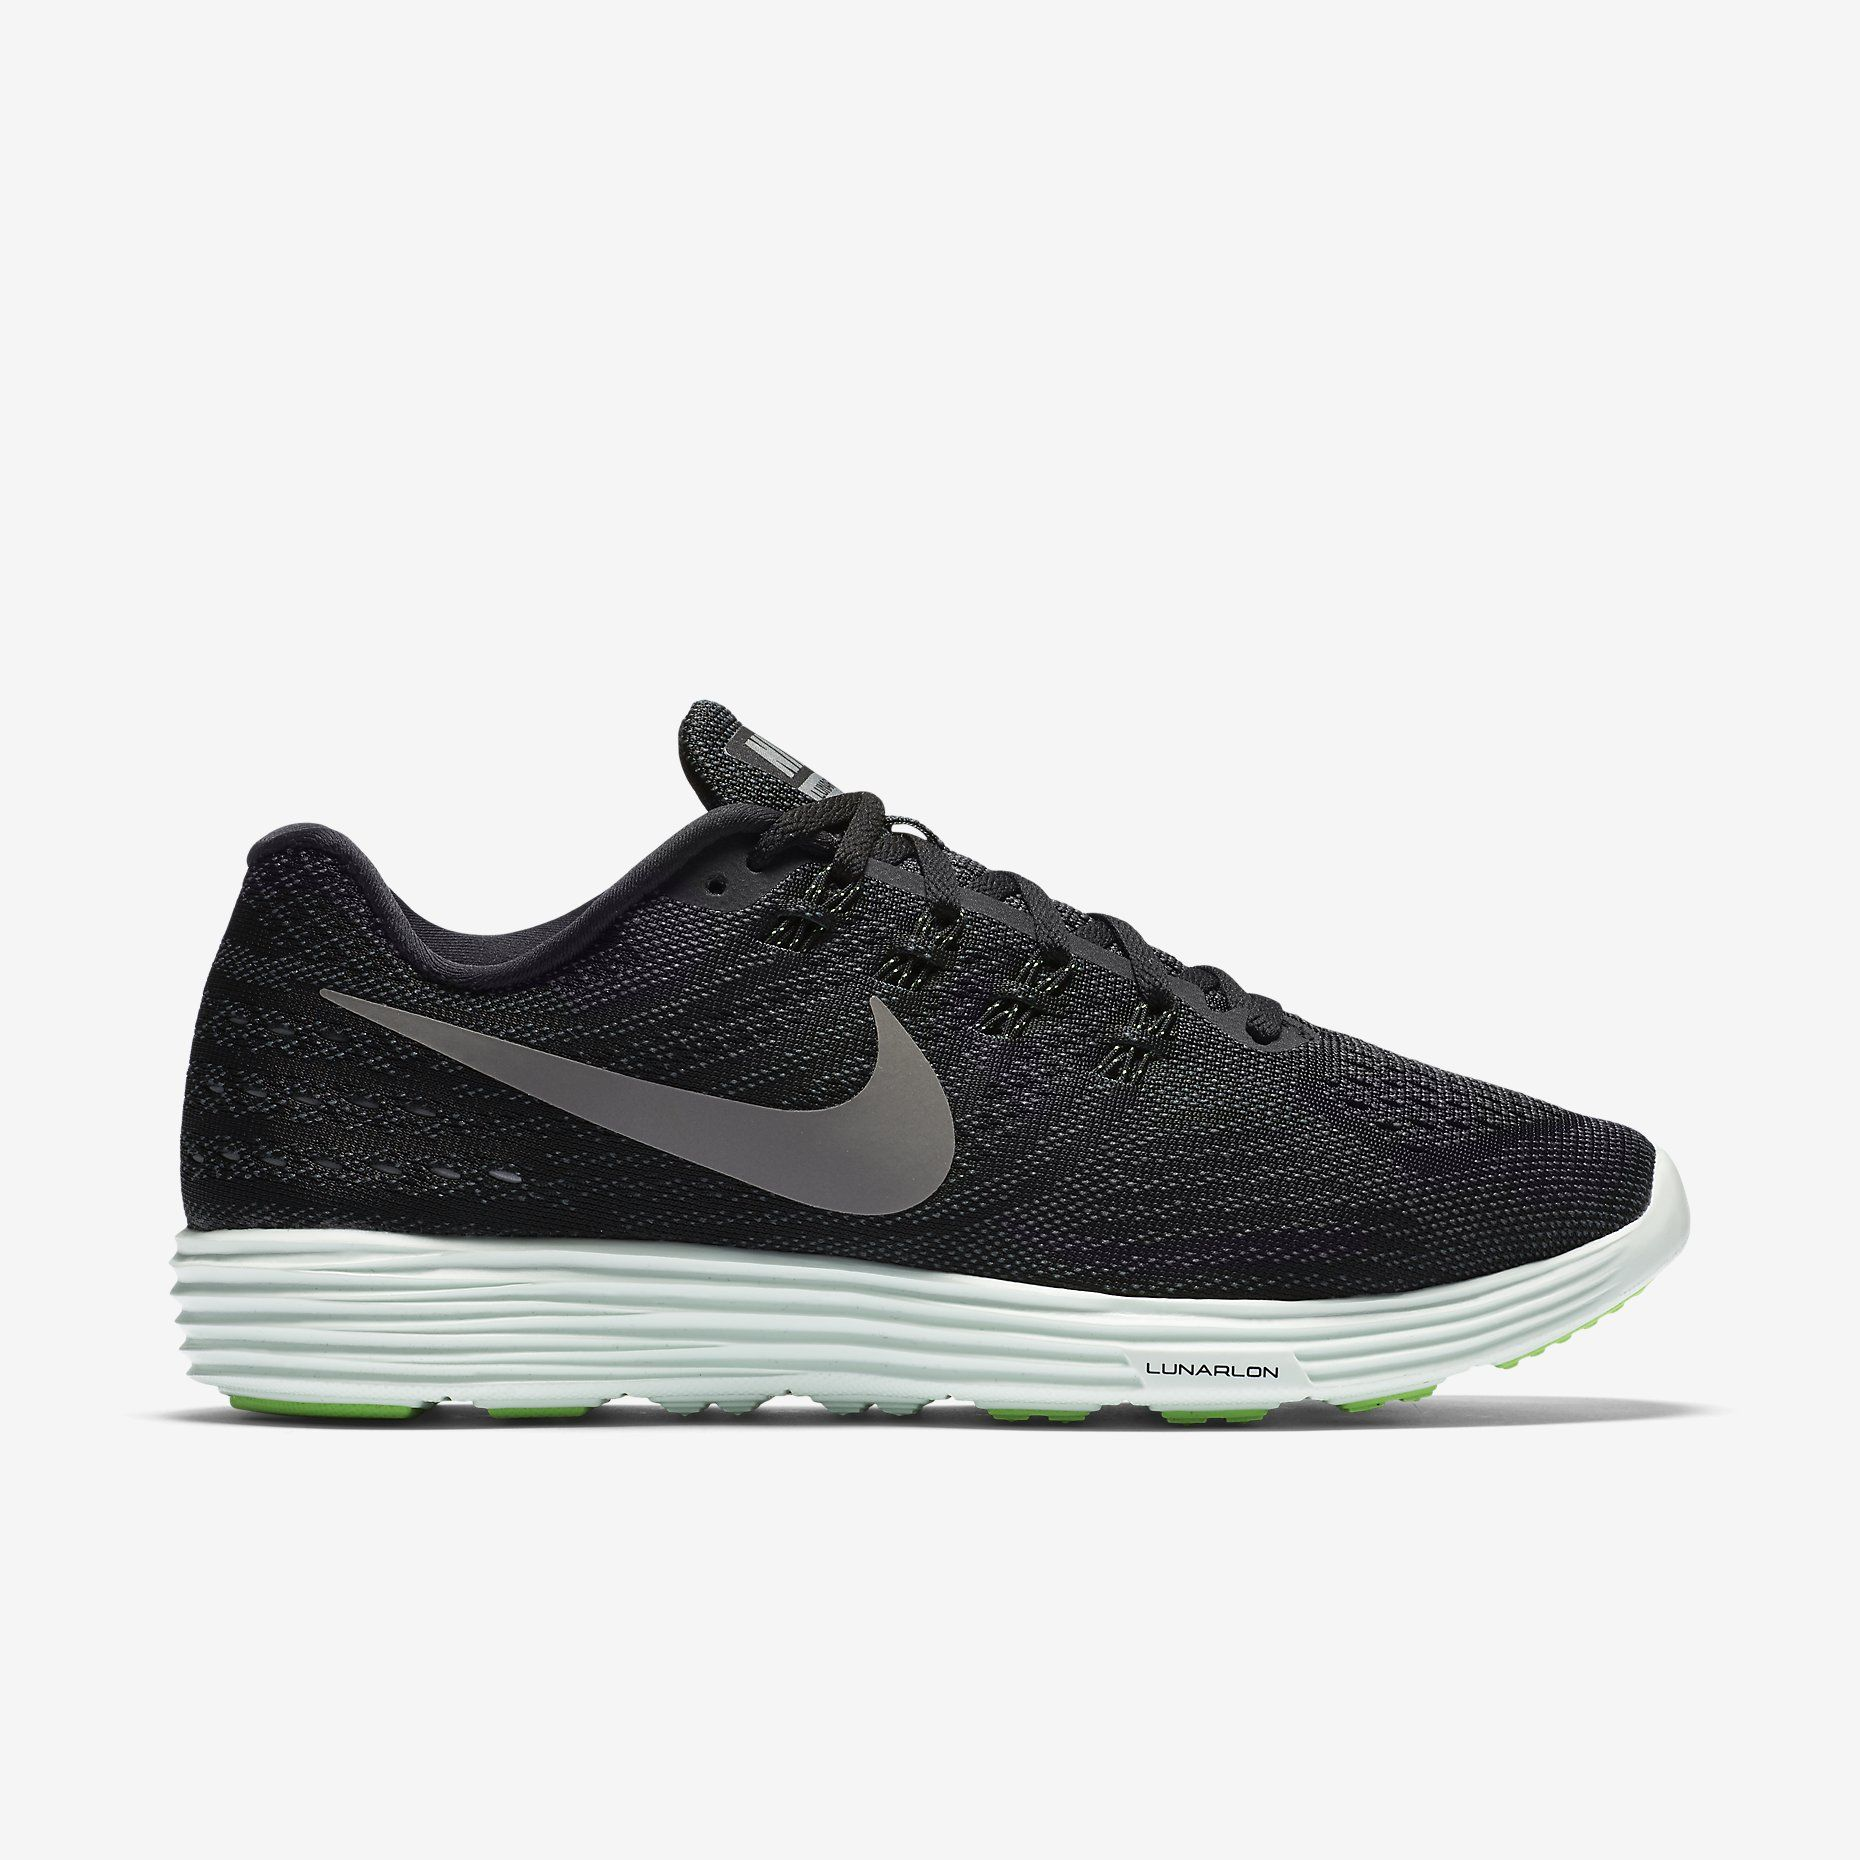 new products b7a06 5fb73 Nike Lunartempo 2 MP (Black Anthracite Barely Green Metallic Pewter)